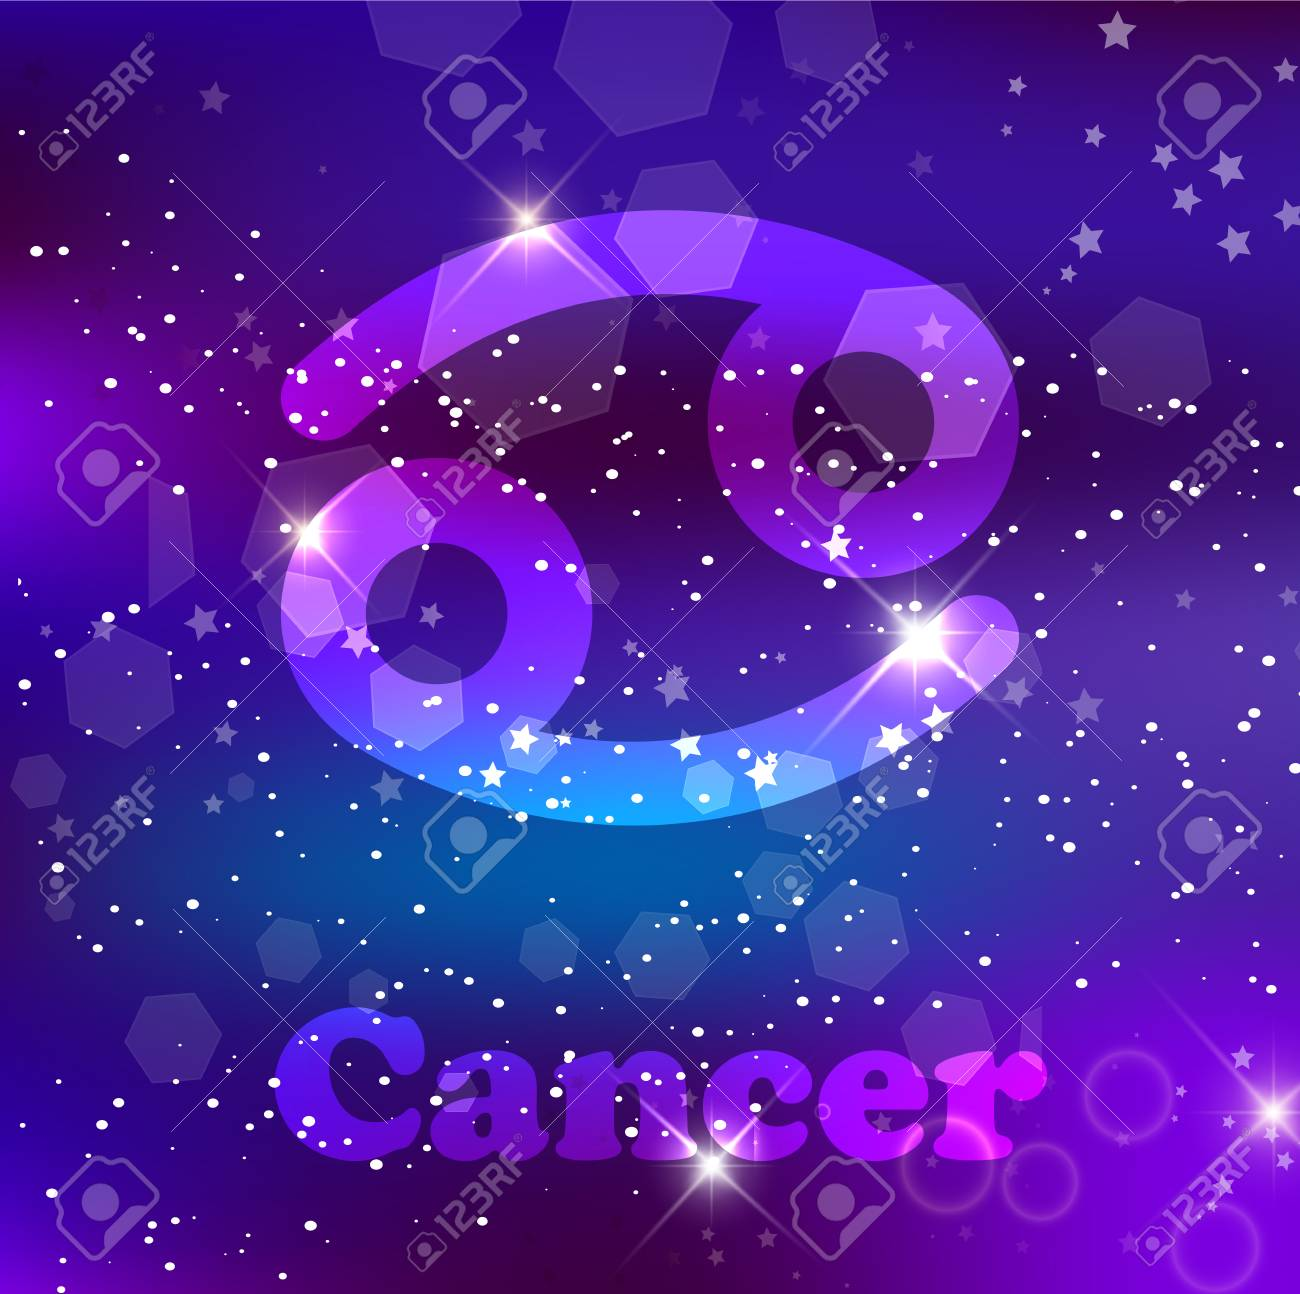 Cancer Zodiac Sign And Constellation On A Cosmic Purple Background Royalty Free Cliparts Vectors And Stock Illustration Image 114558274